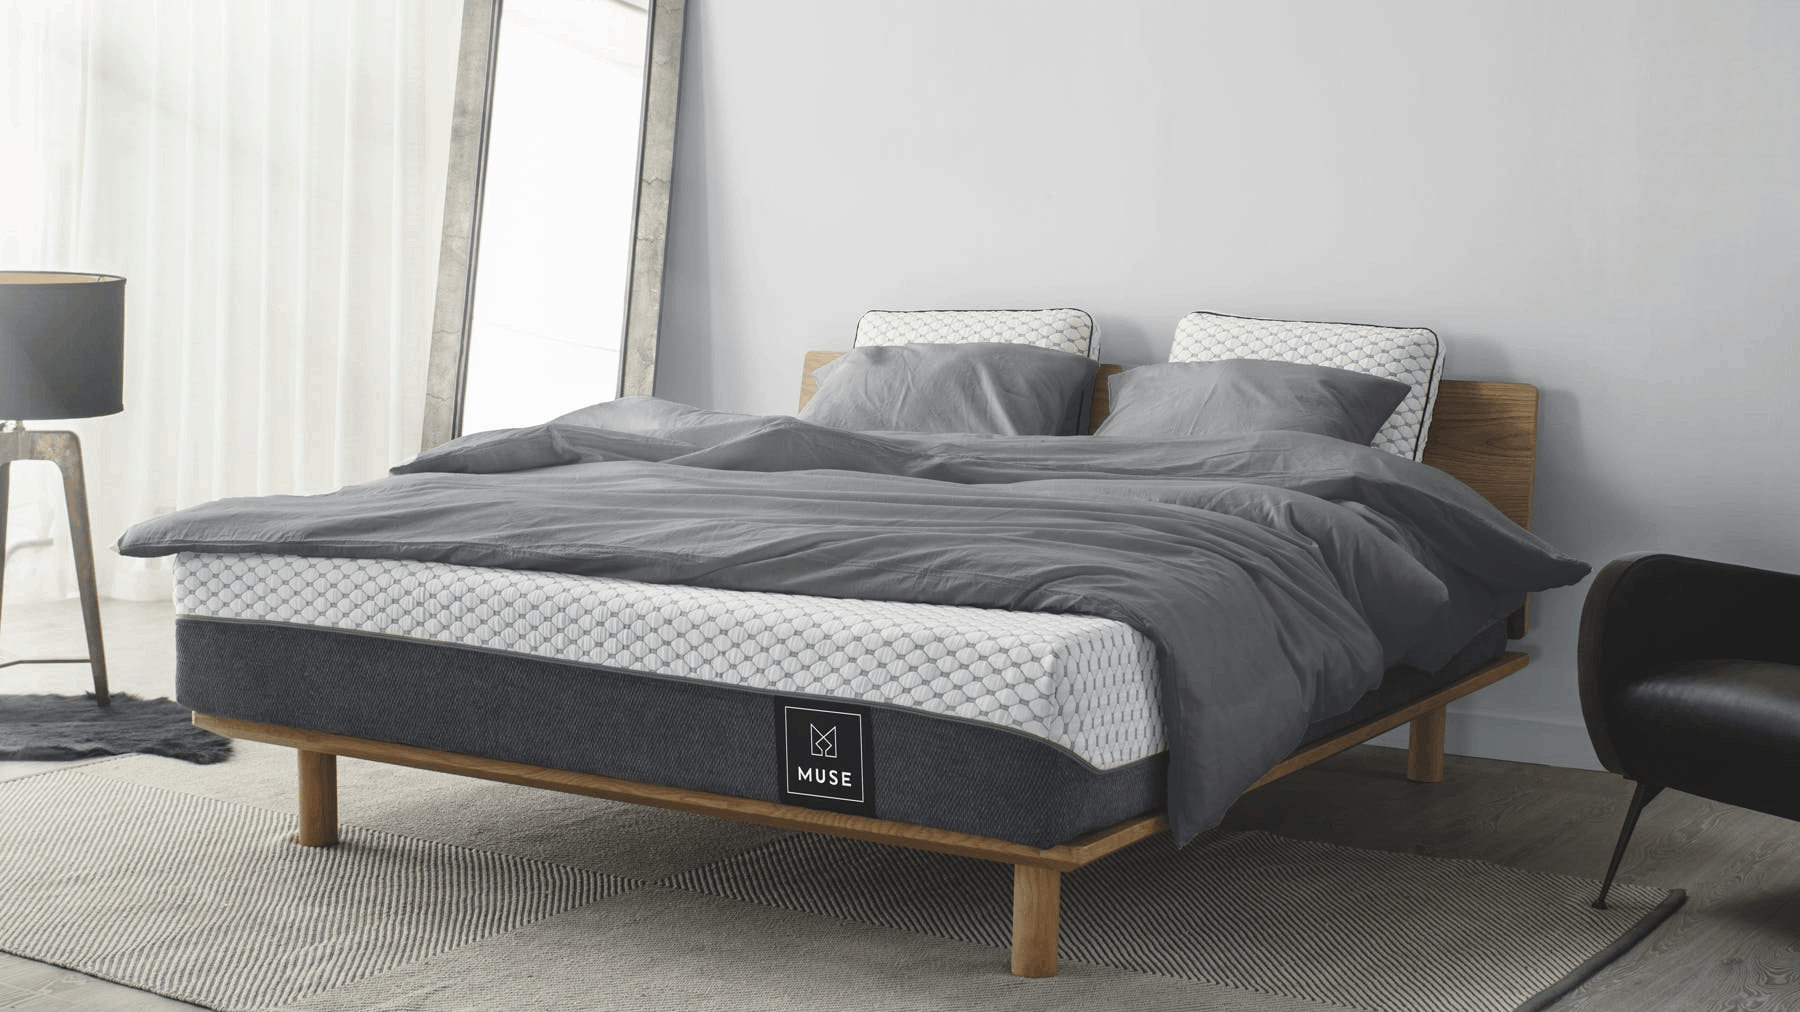 muse mattress review bed